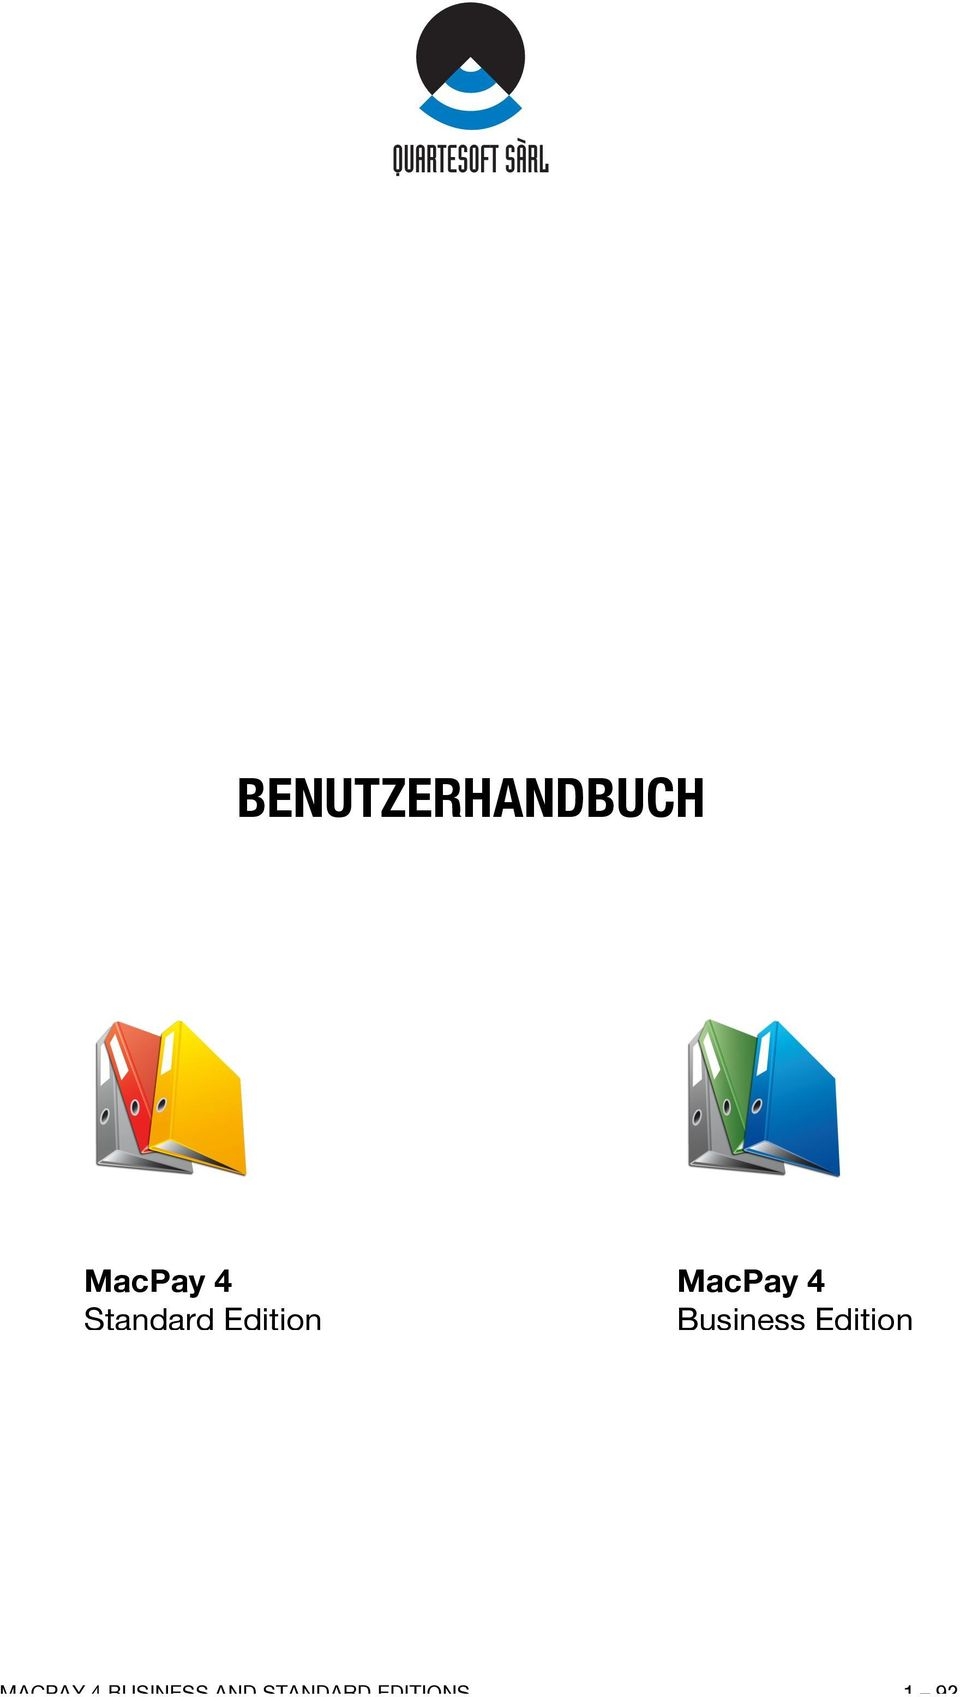 Business Edition MACPAY 4